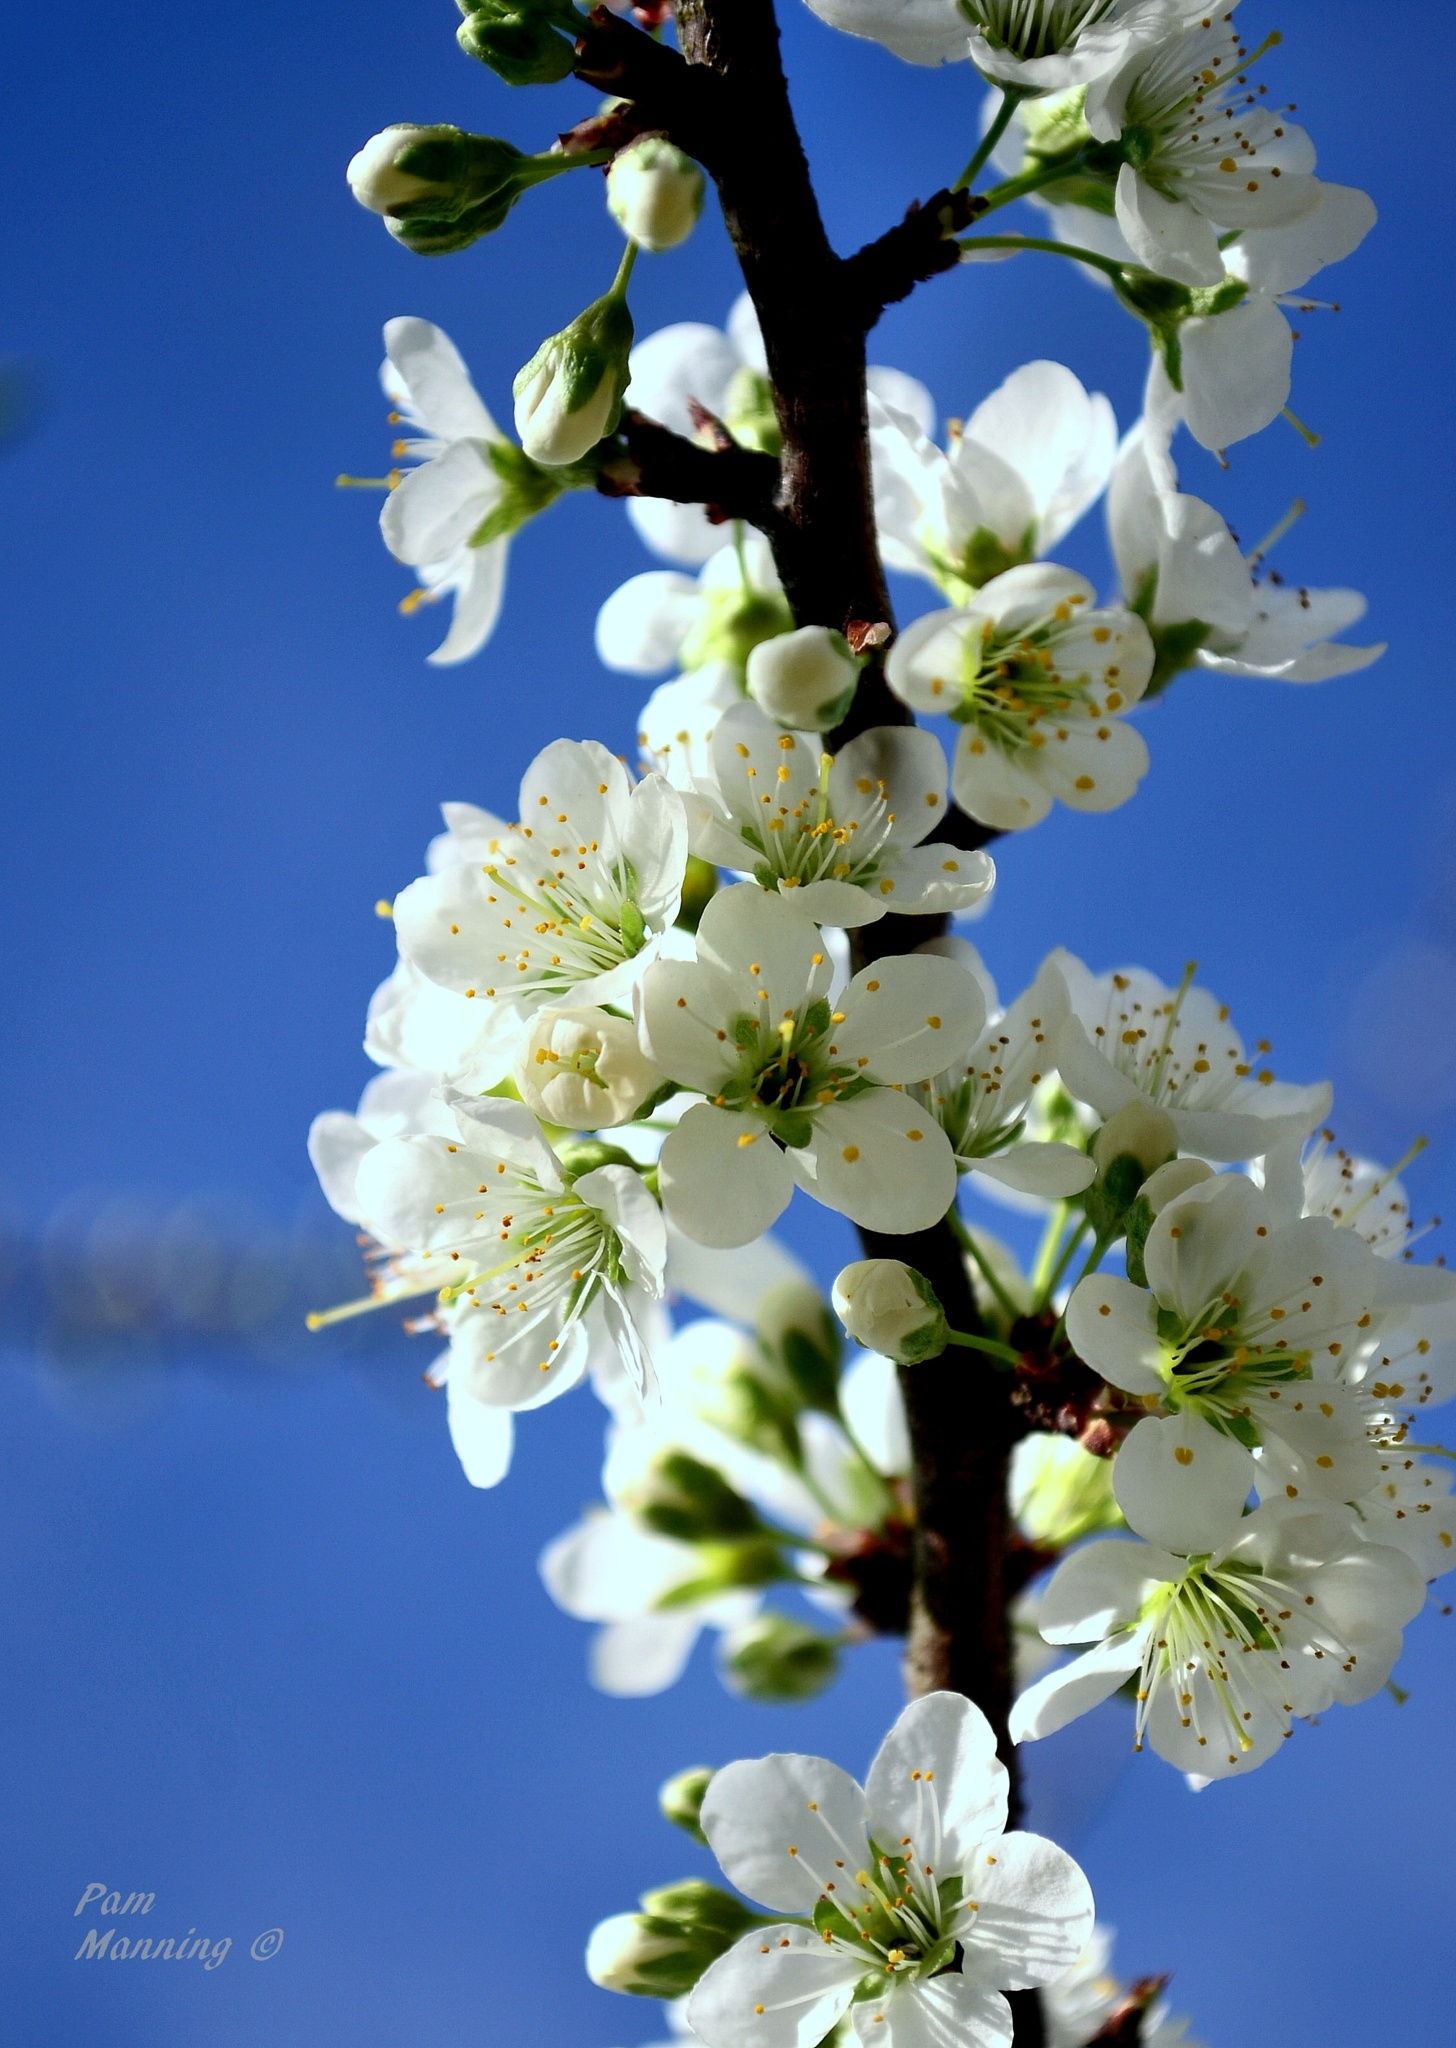 White blossoms 1 by pam.satterfieldmanning